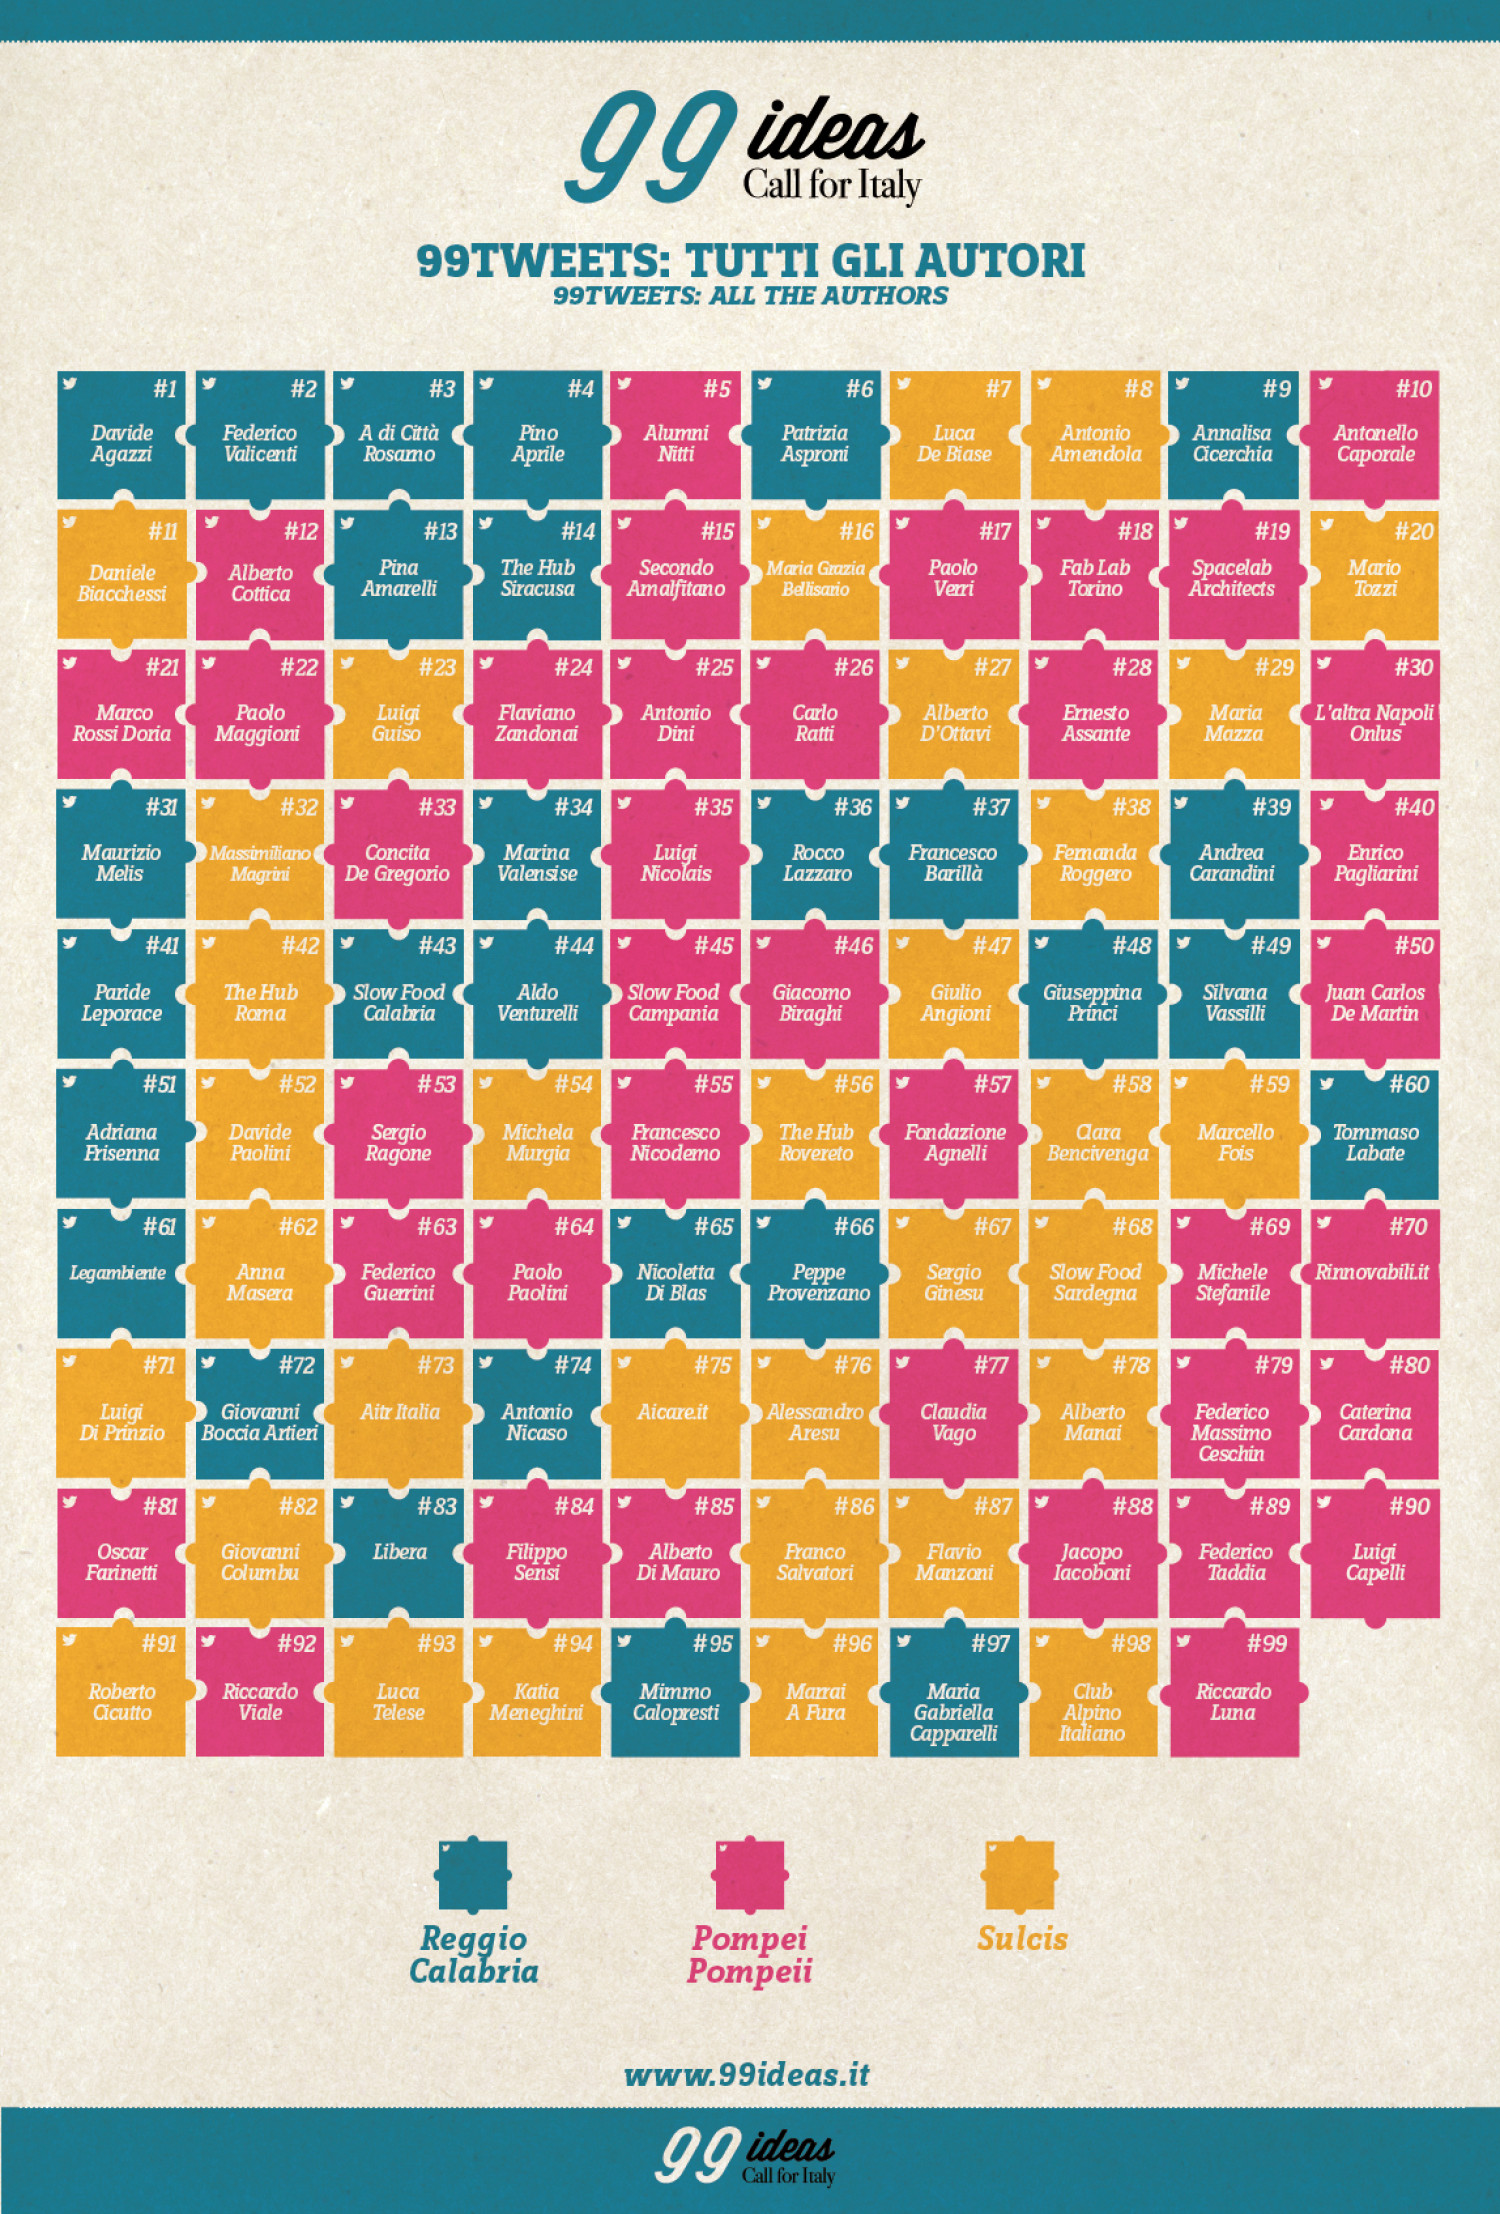 #99ideas #infografica #99tweets Infographic